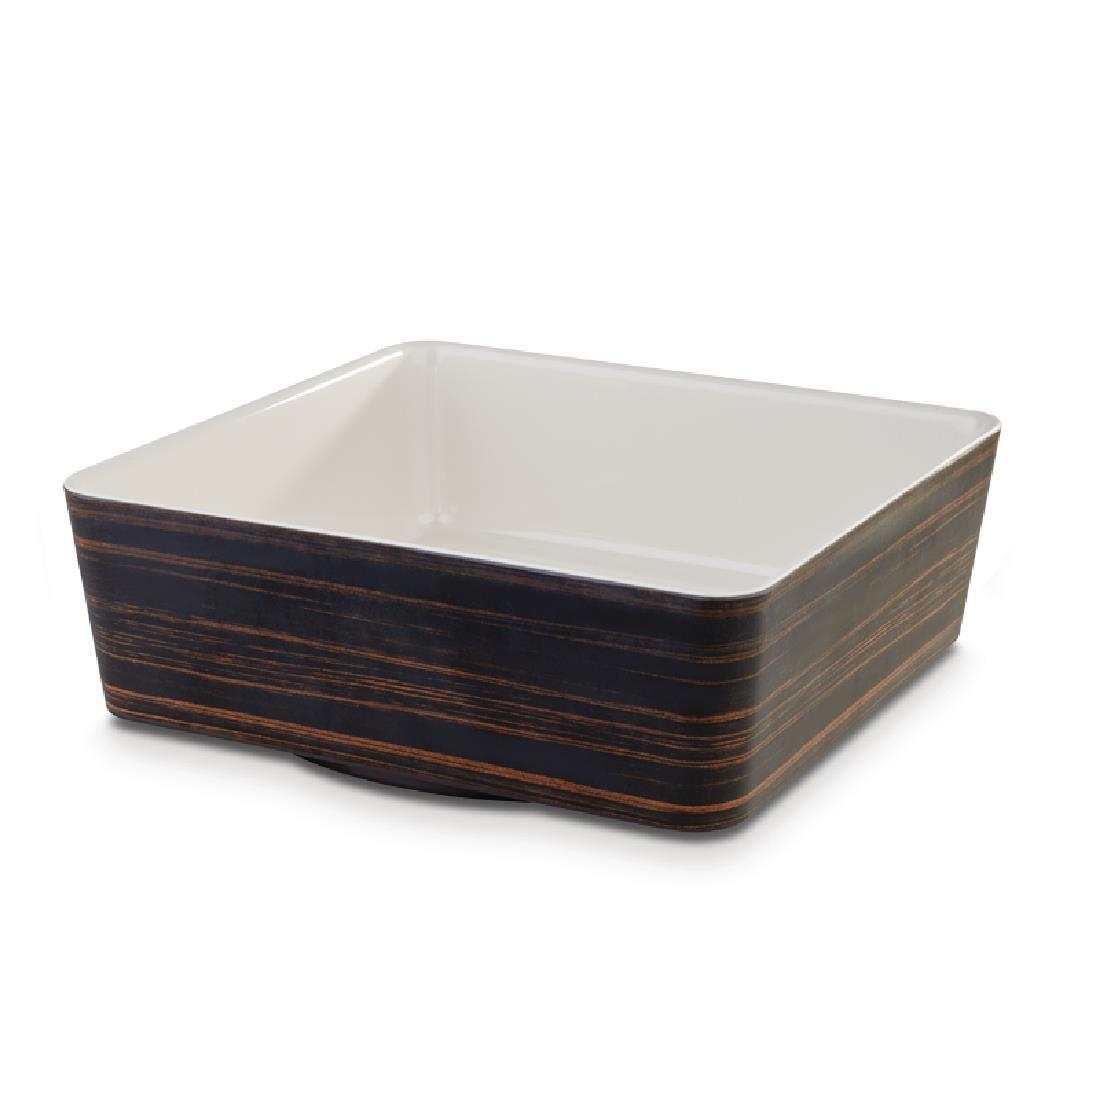 CW692 - APS+ Melamine Square Bowl Oak and Cream 4 Ltr - Each - CW692